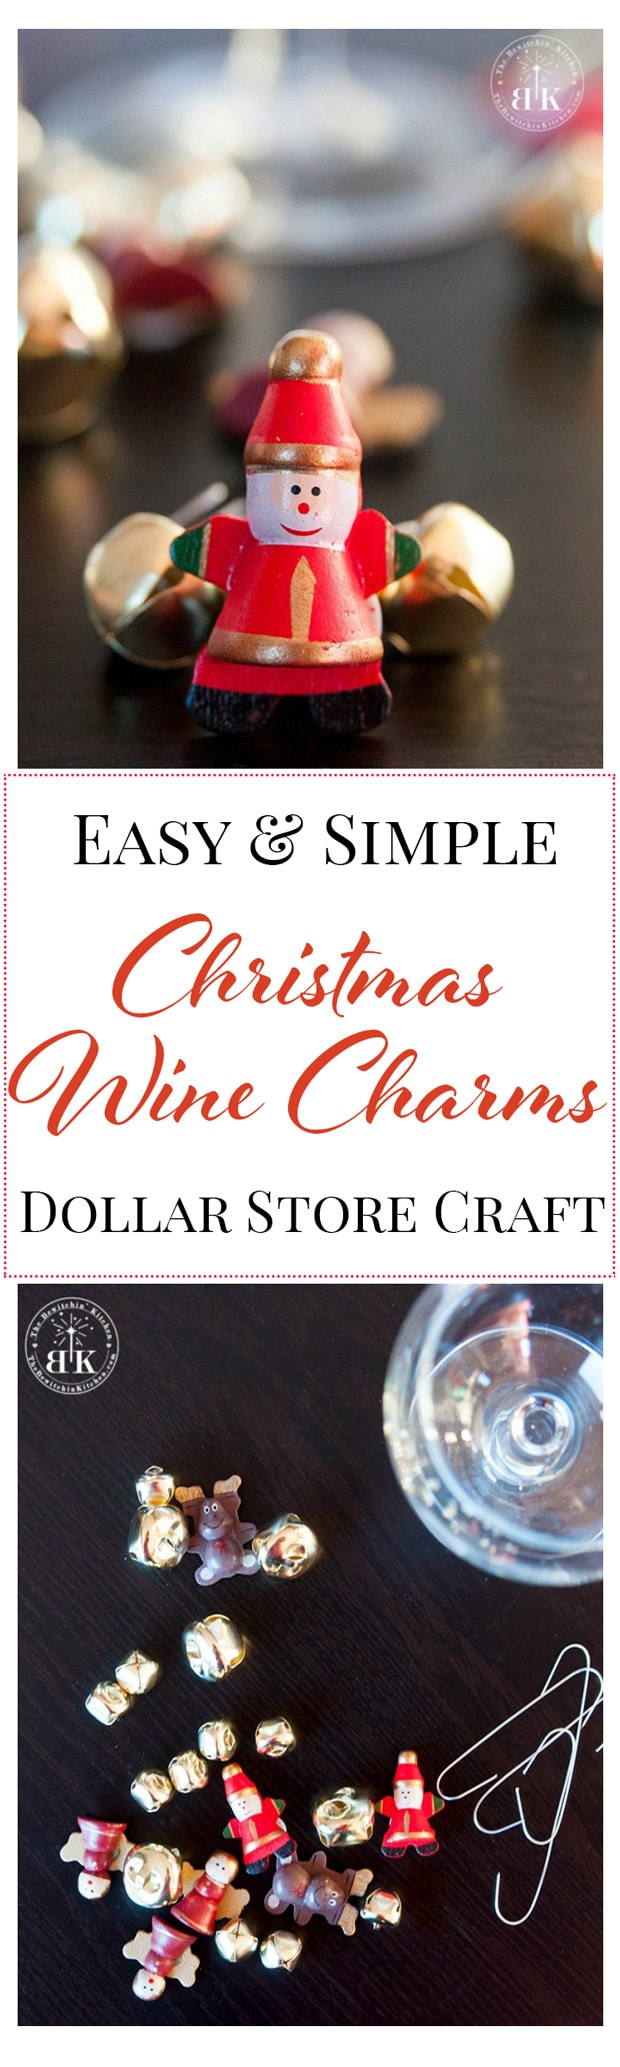 Easy DIY Wine Charms - this Christmas craft is very easy and cheap to do. Everything you need is from the dollar store. I love dollar store crafts!